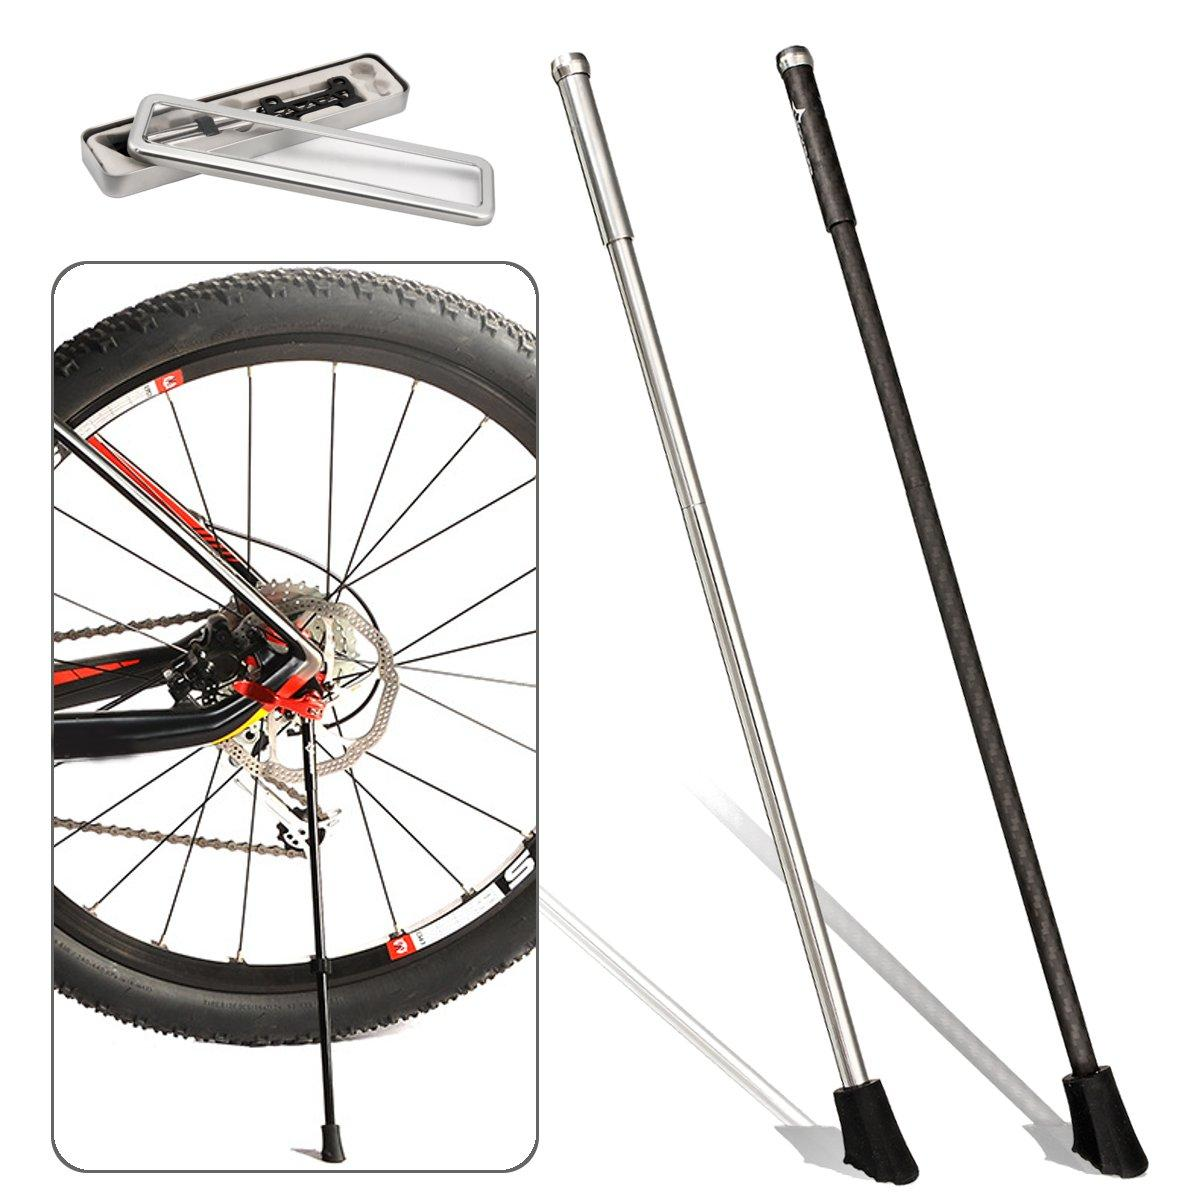 Bikight Carbon Fiber Stainless Steel Cycling Bike Kickstand Road